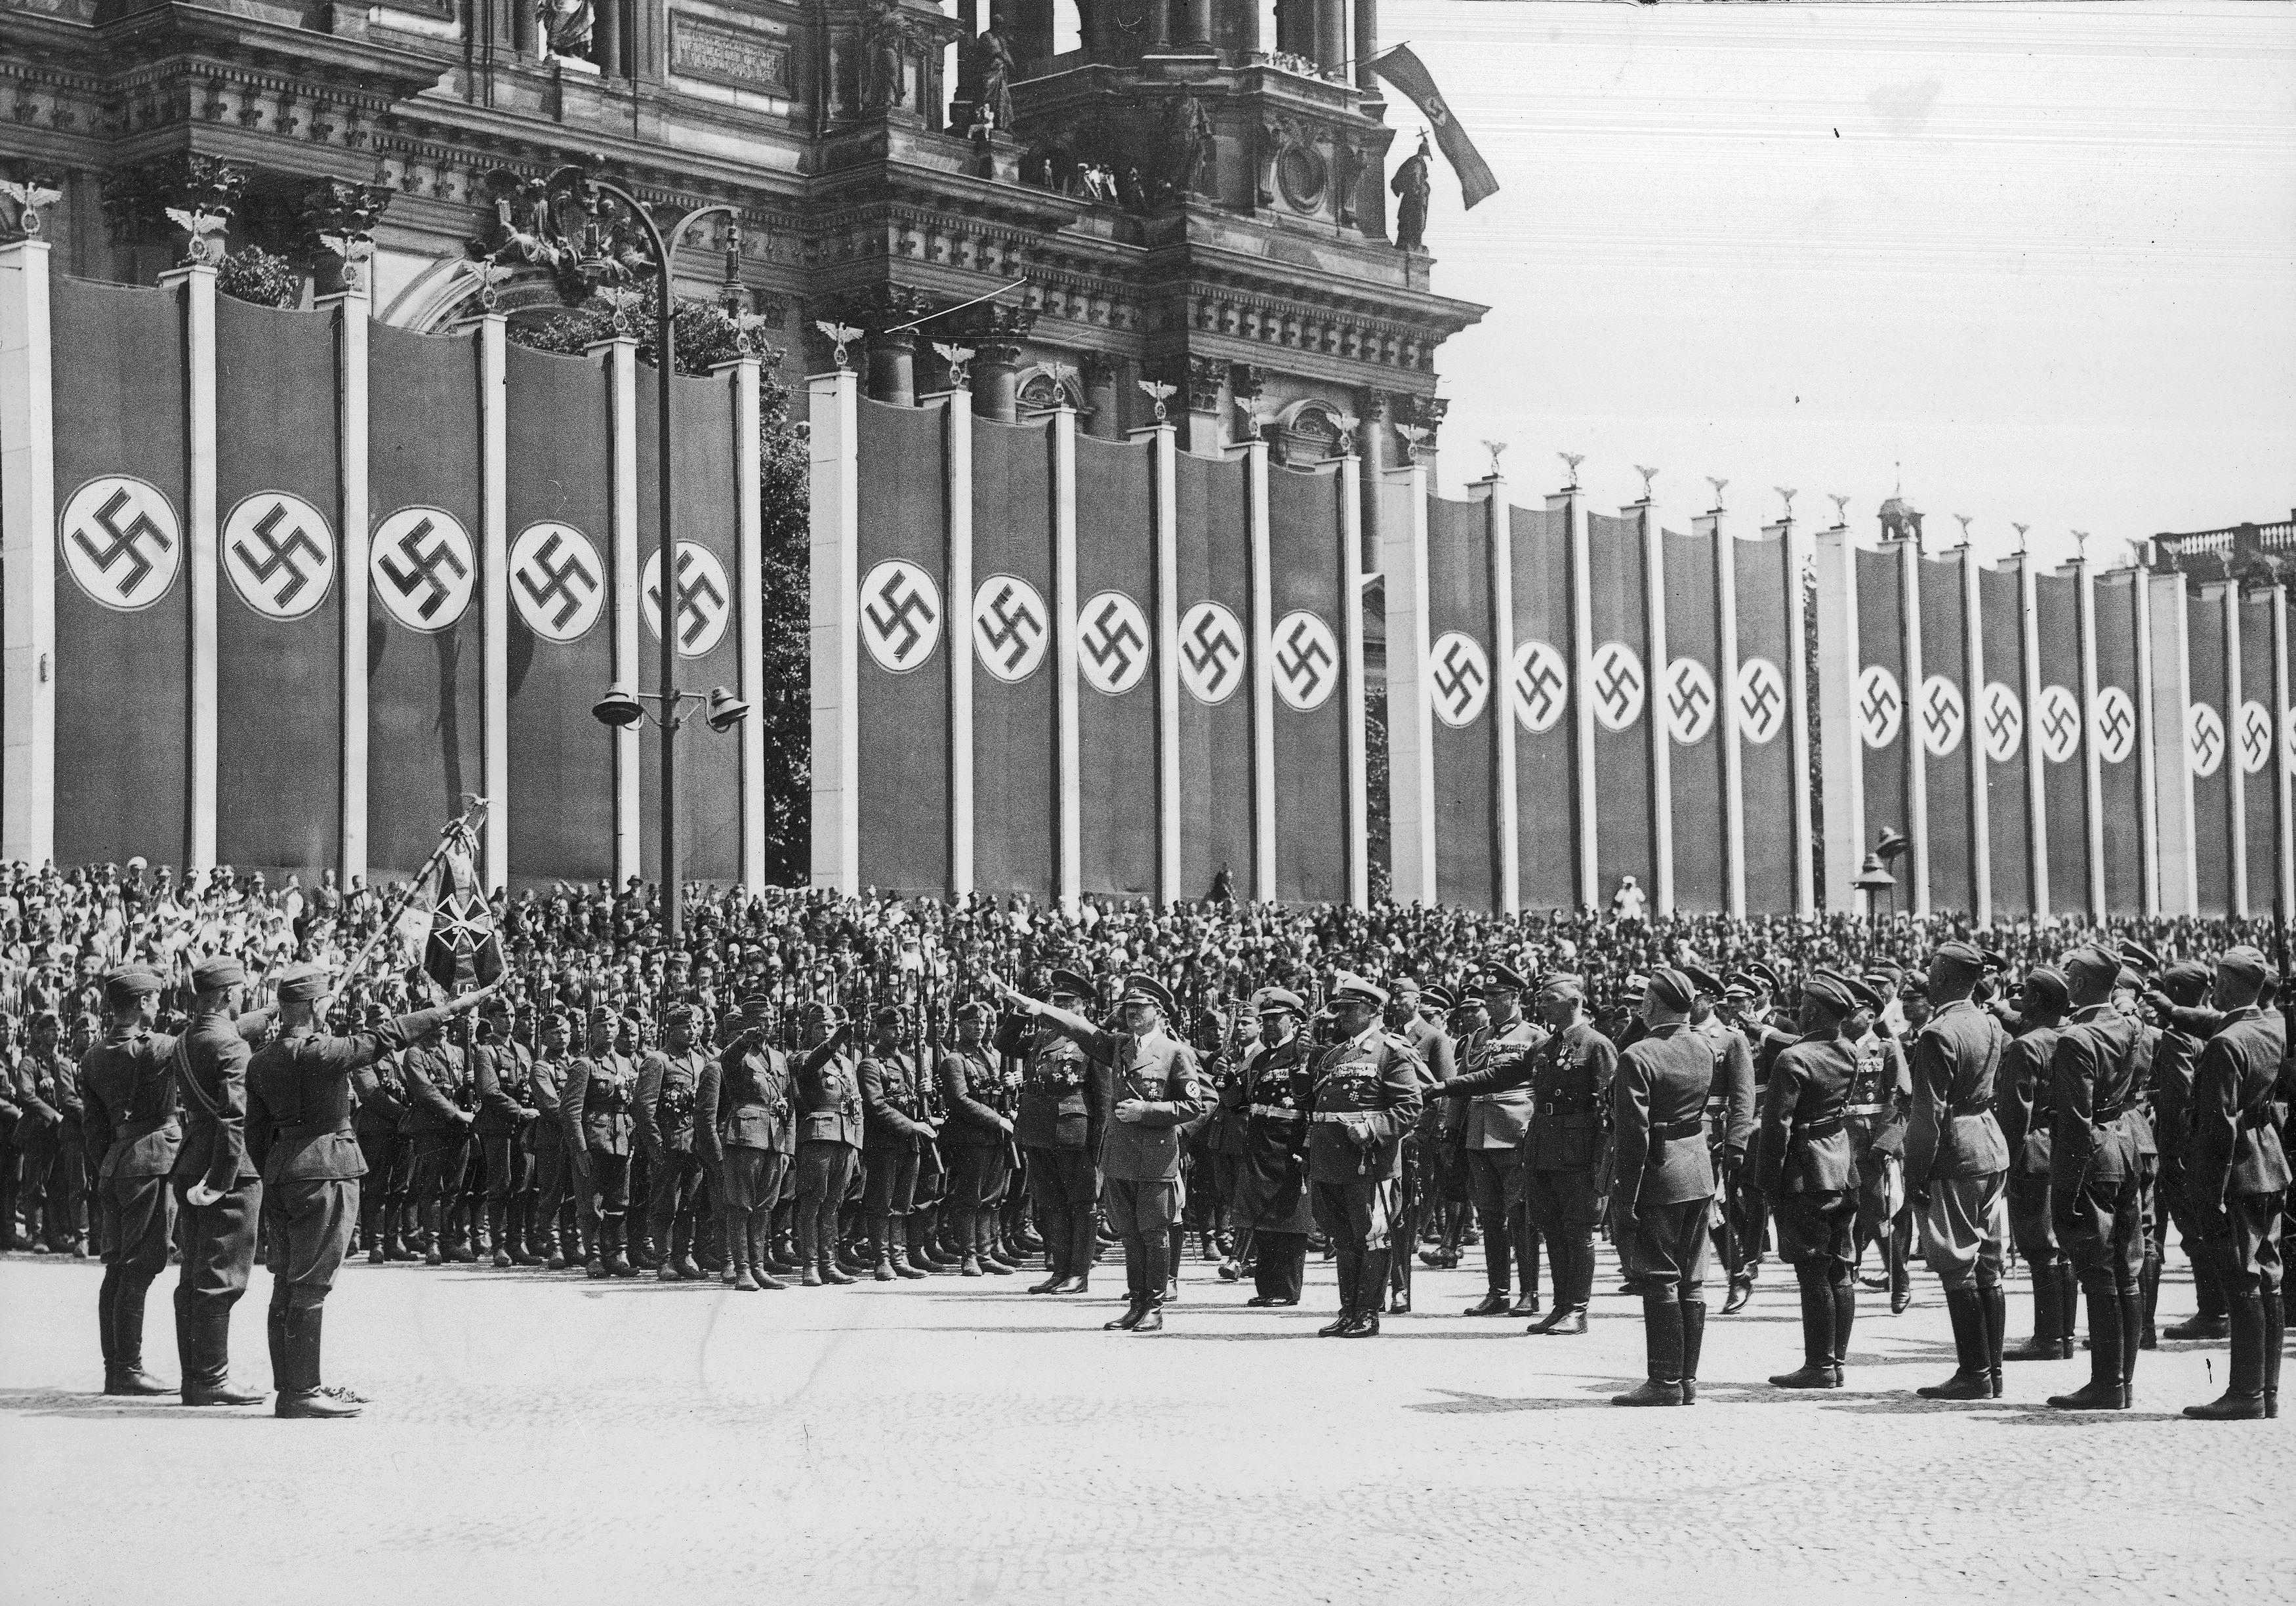 Adolf Hitler and Hermann Görinf salute the flag after the return of Legion Condor in Berlin